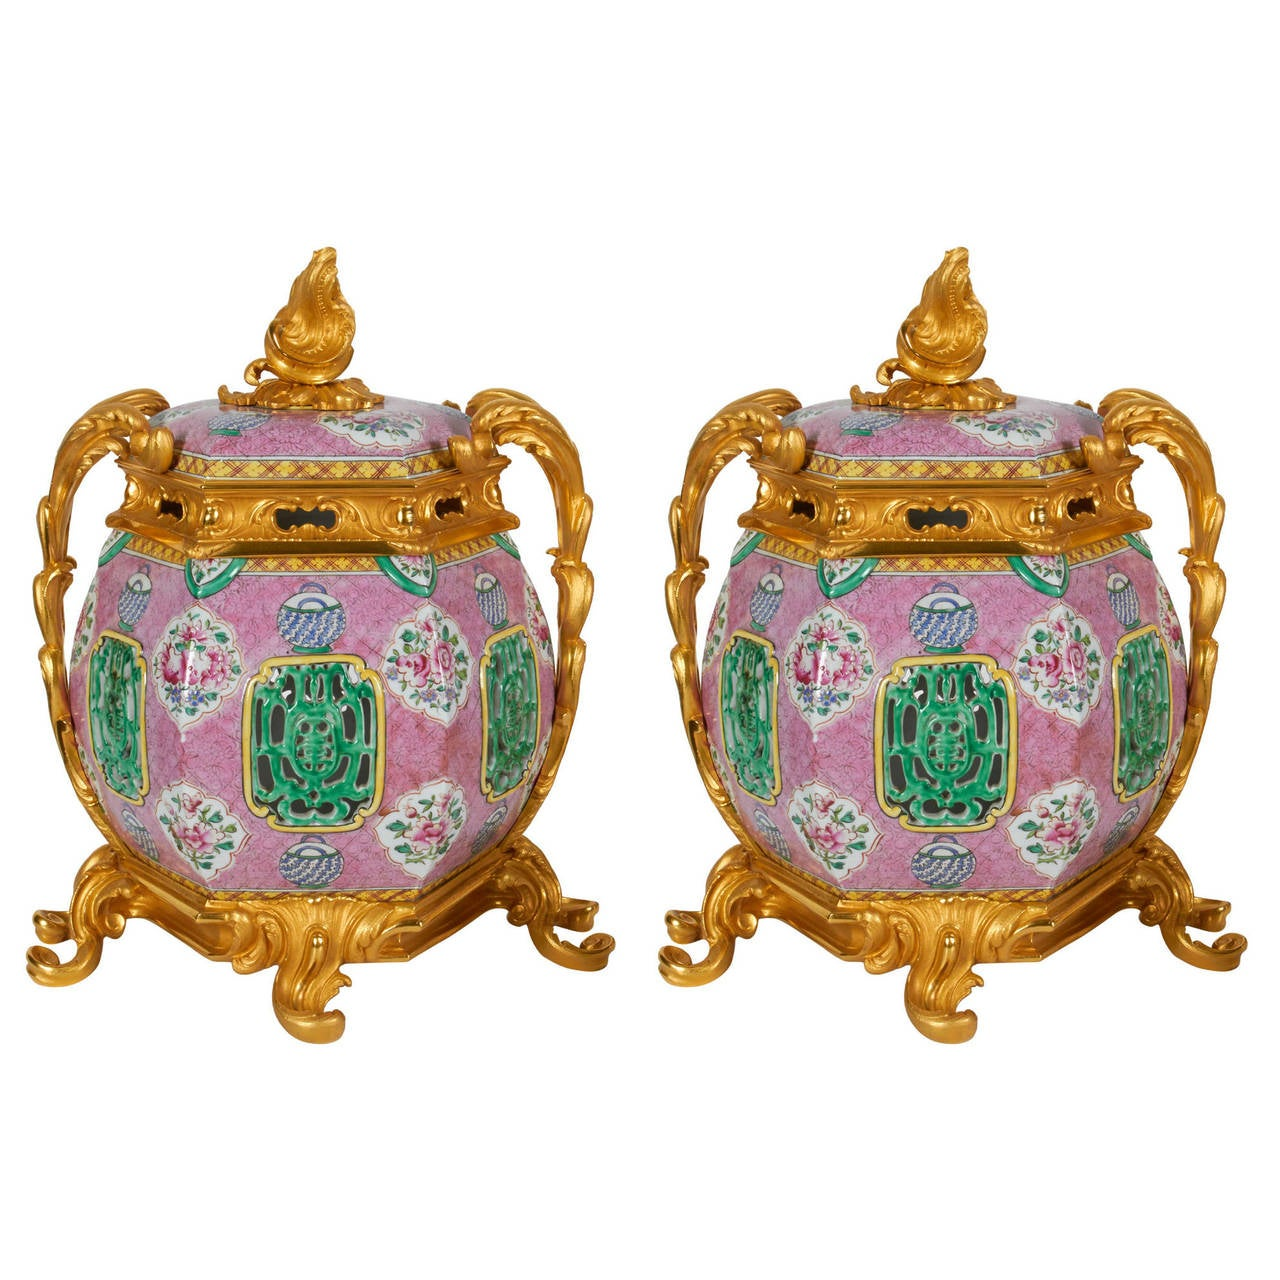 Pair of Antique Chinese Export Porcelain and Ormolu-Mounted Covered Potpourris